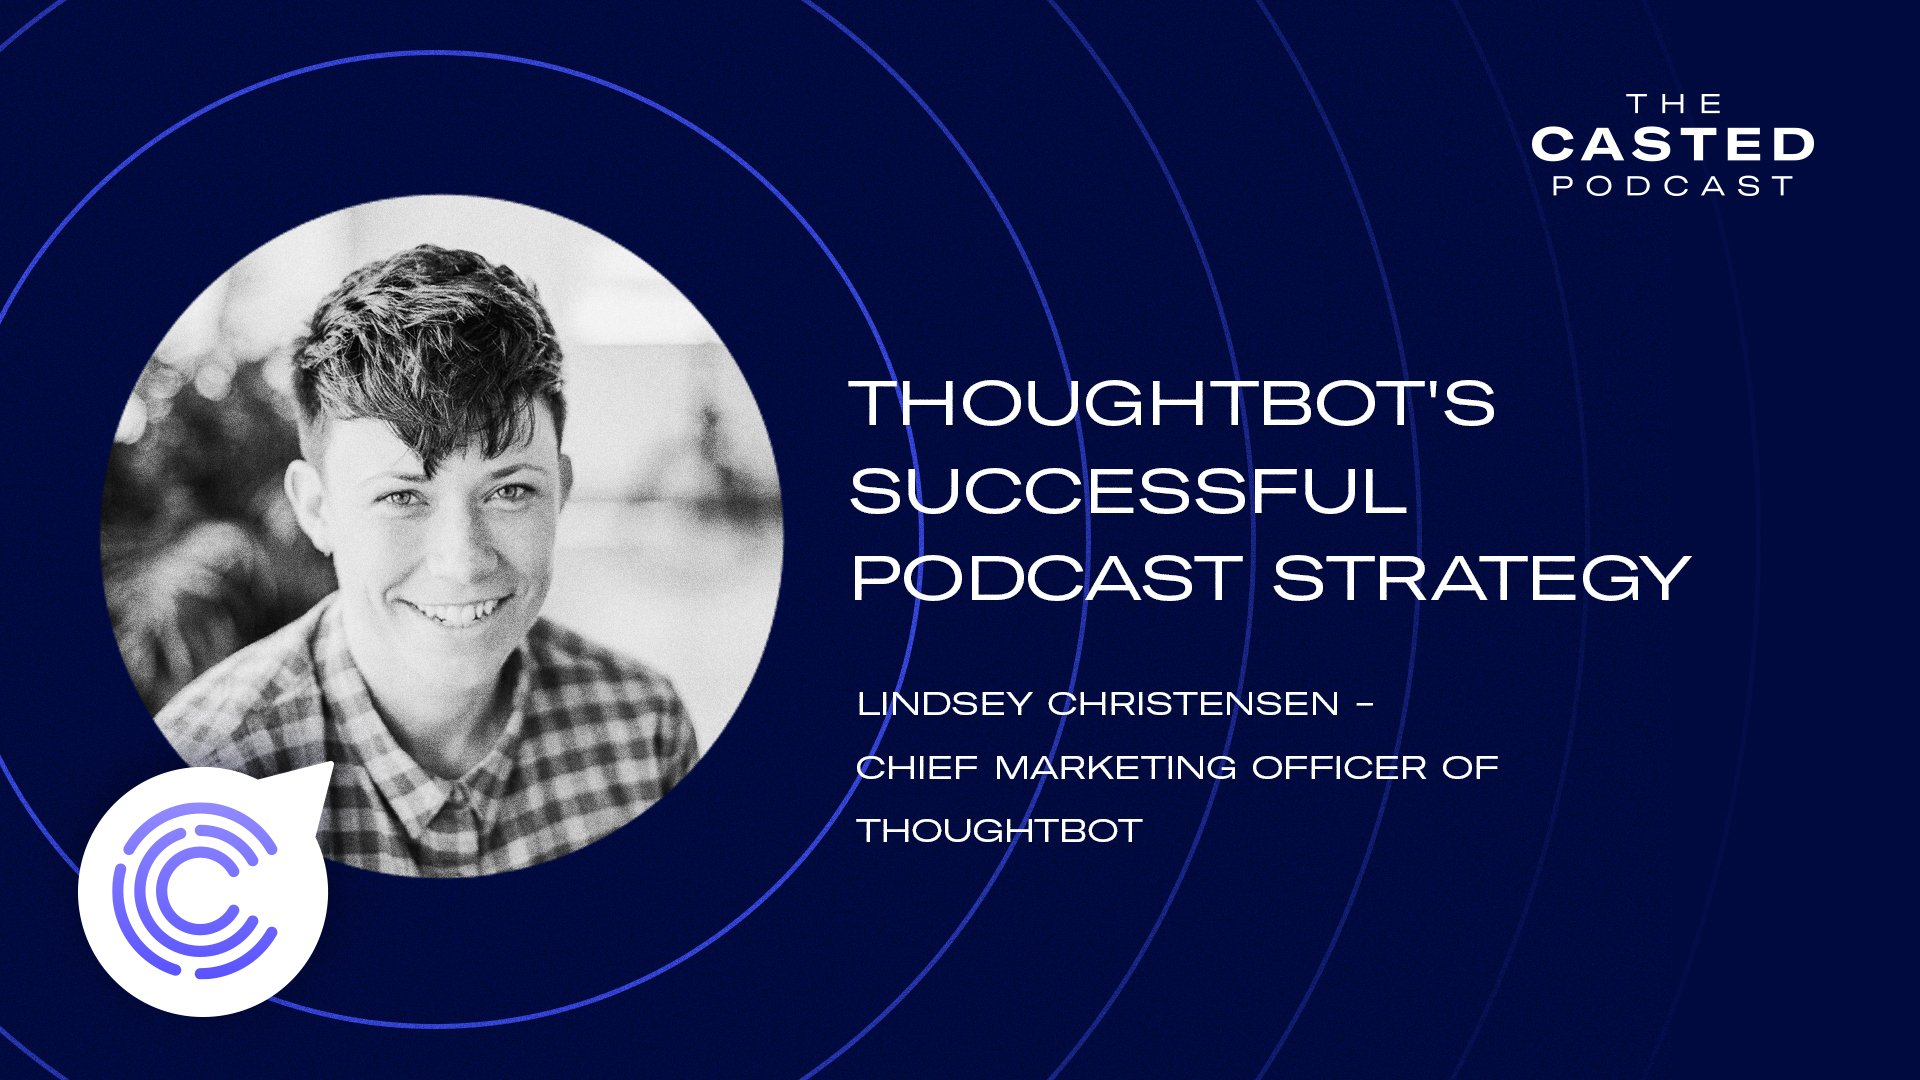 thoughtbot's Smashingly Successful Podcast Strategy with Lindsey Christensen